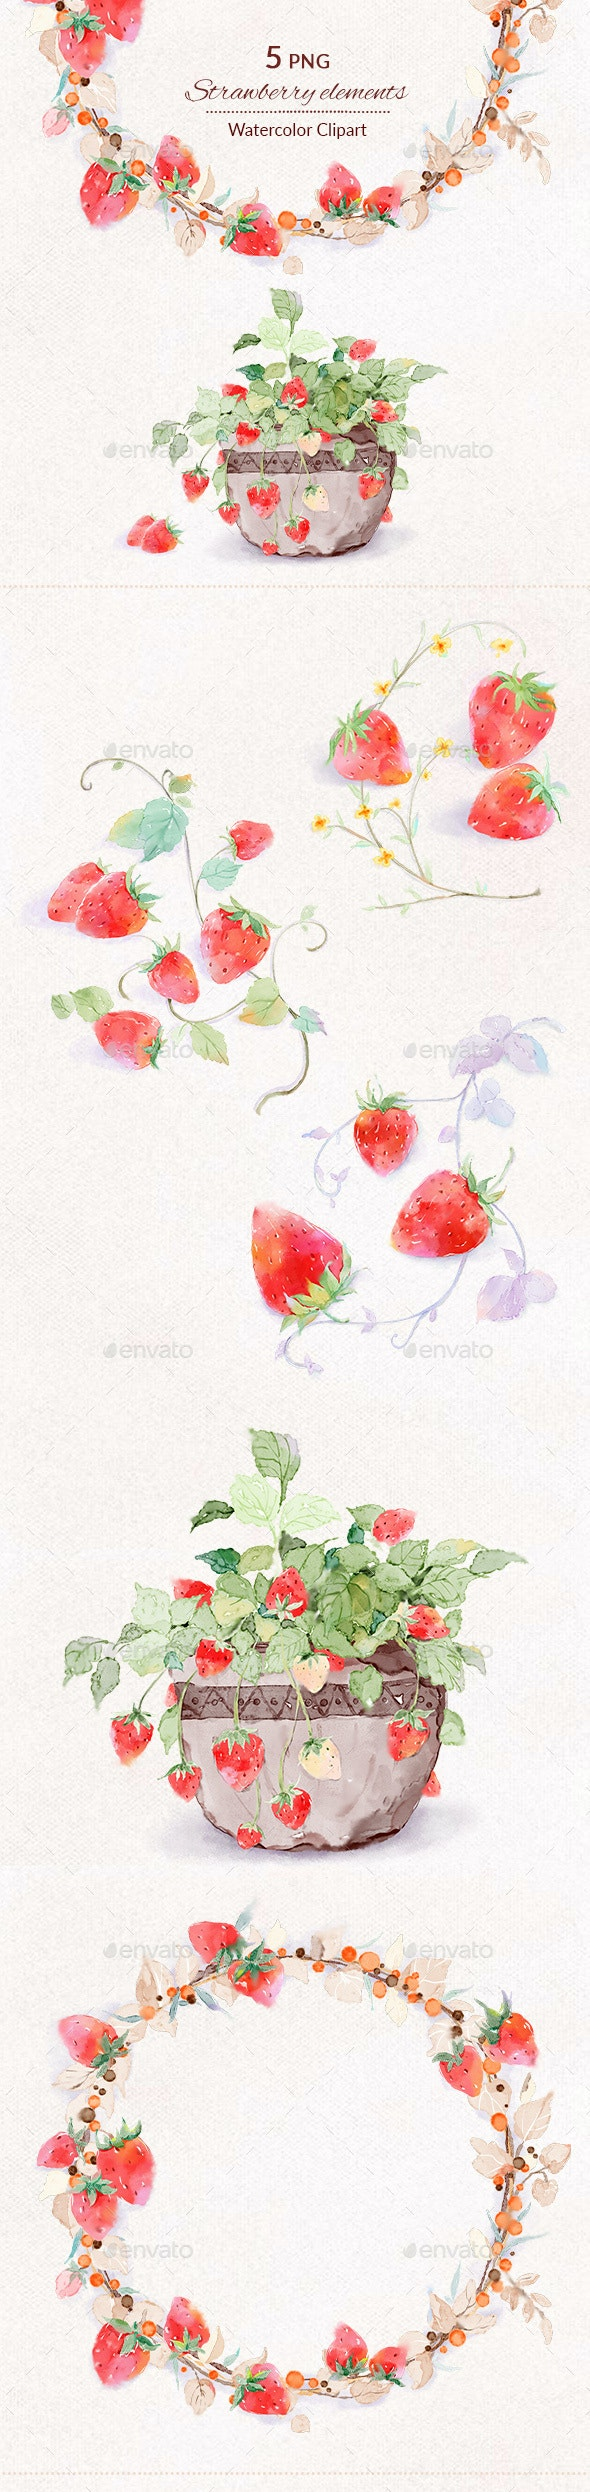 Strawberry Watercolor Digital Illustration Clipart PNG - Objects Illustrations